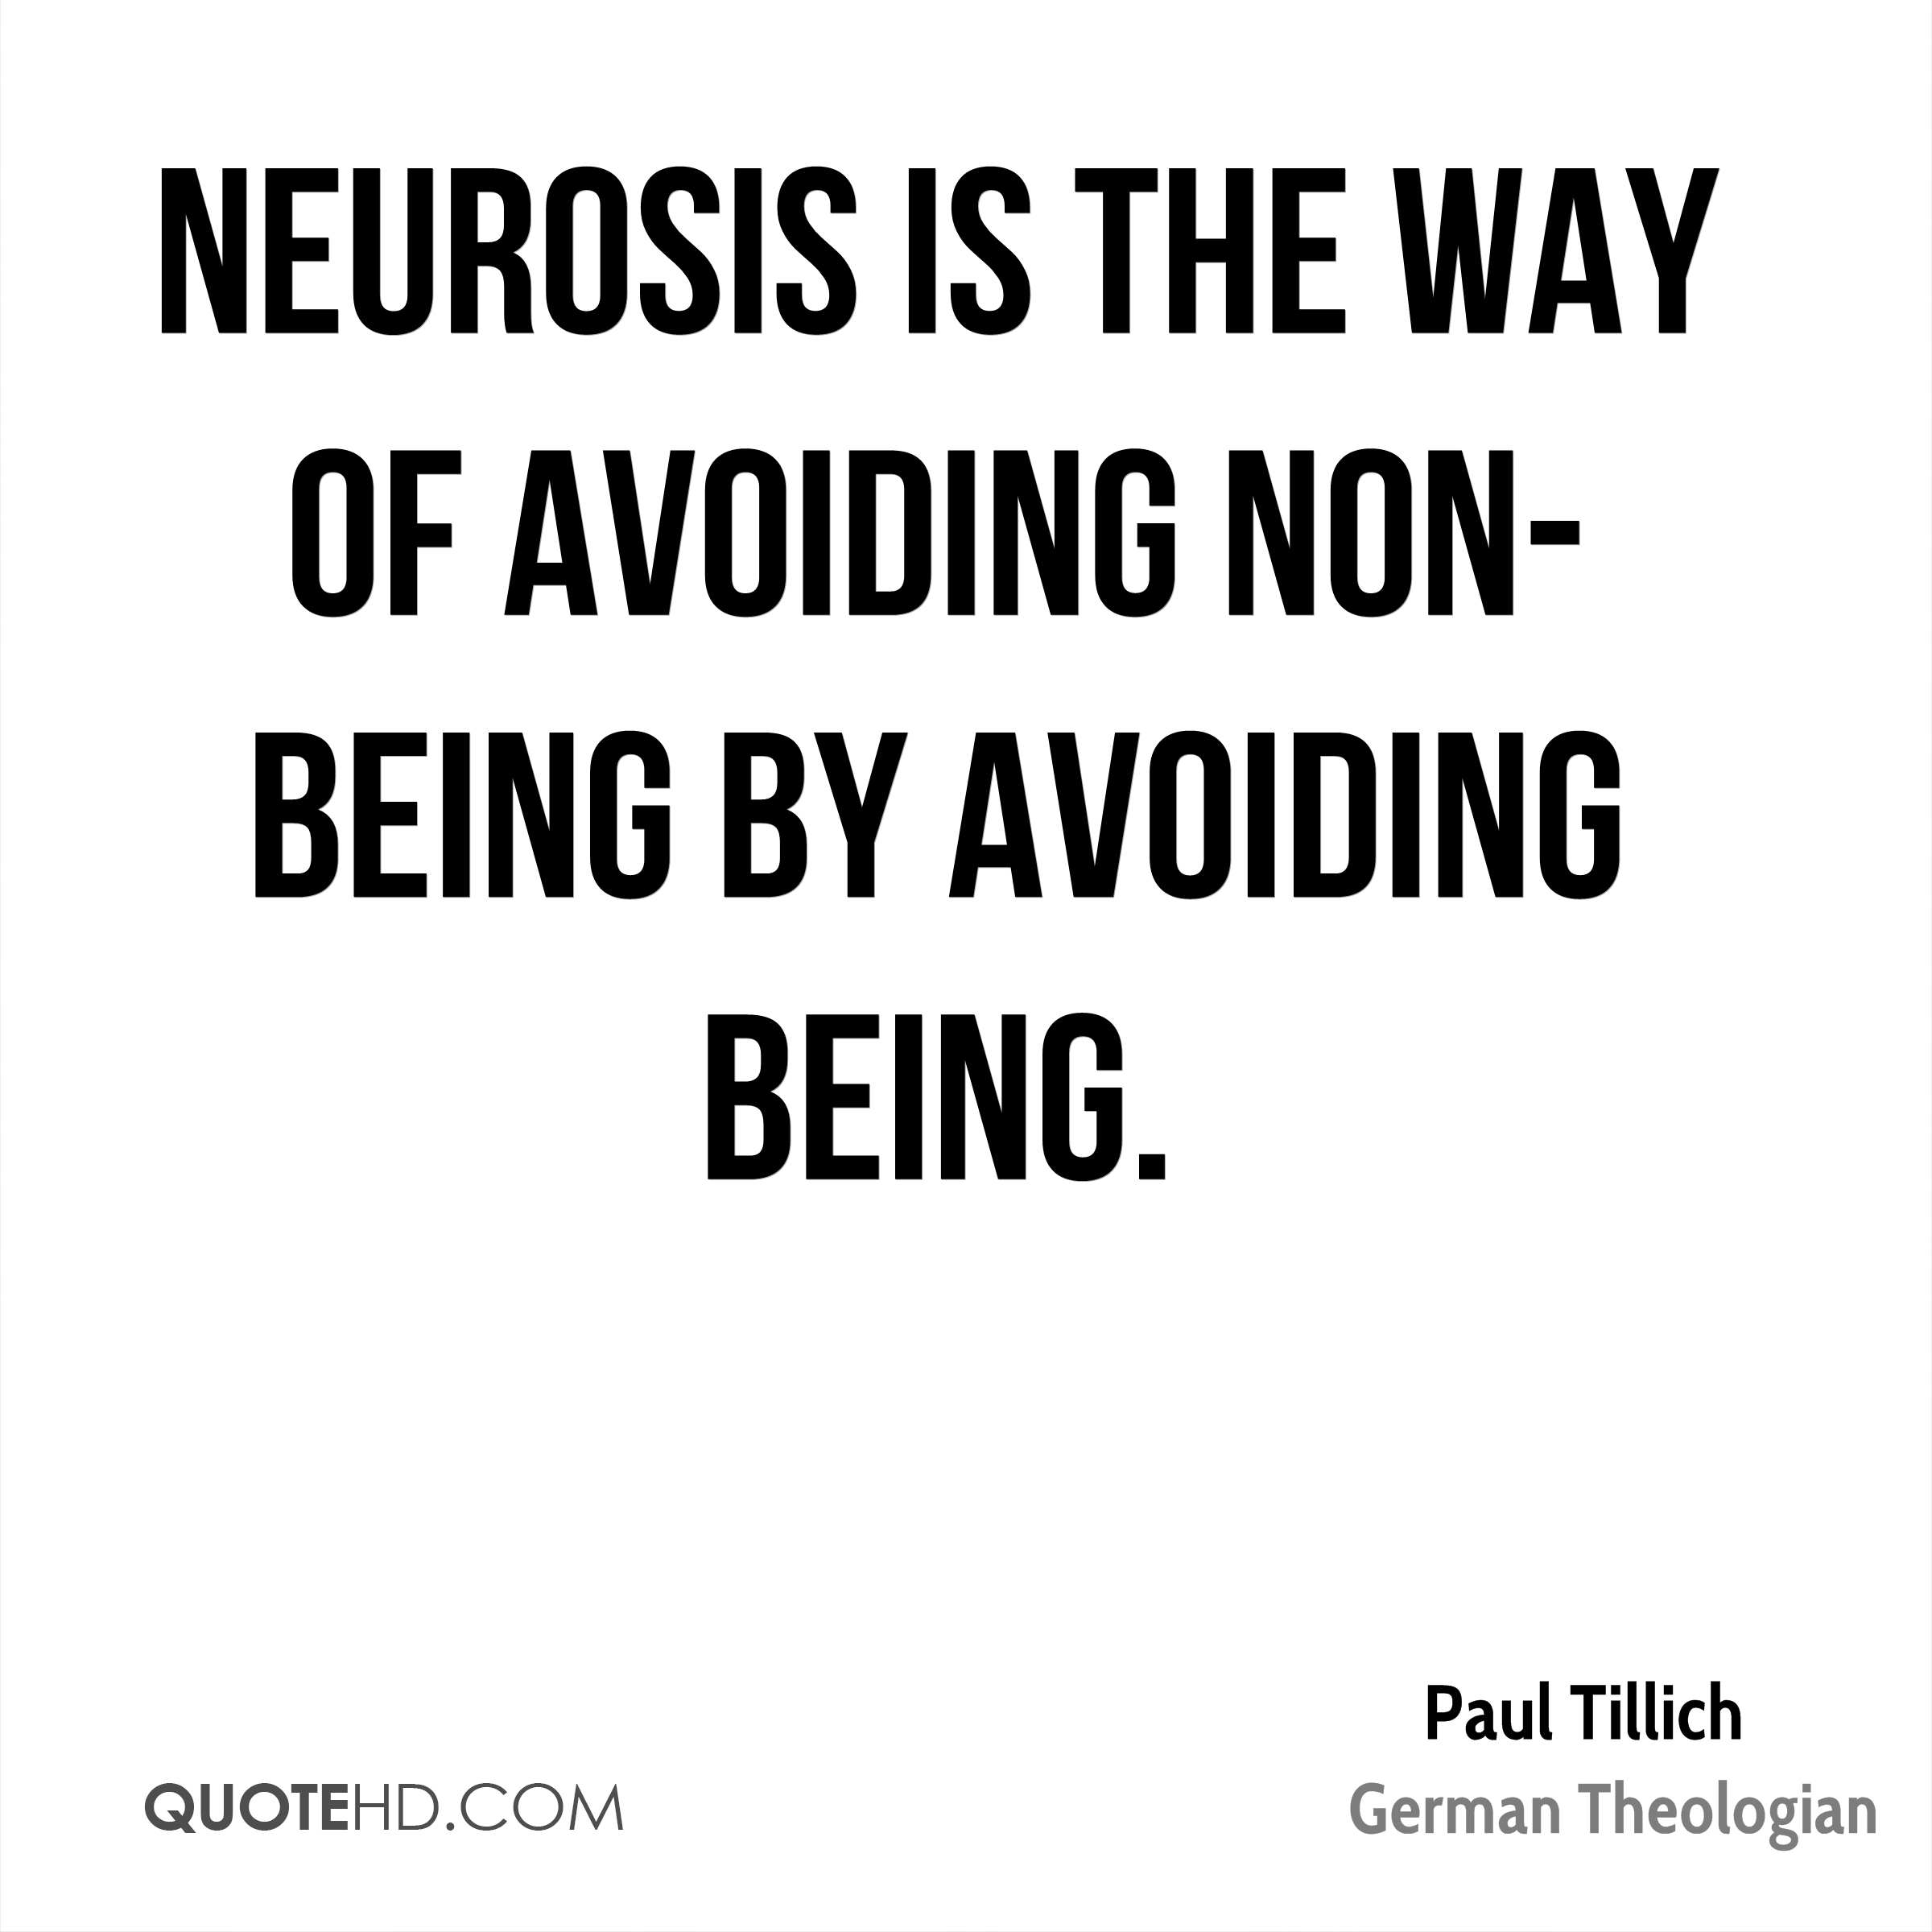 Neurosis is the way of avoiding non-being by avoiding being.